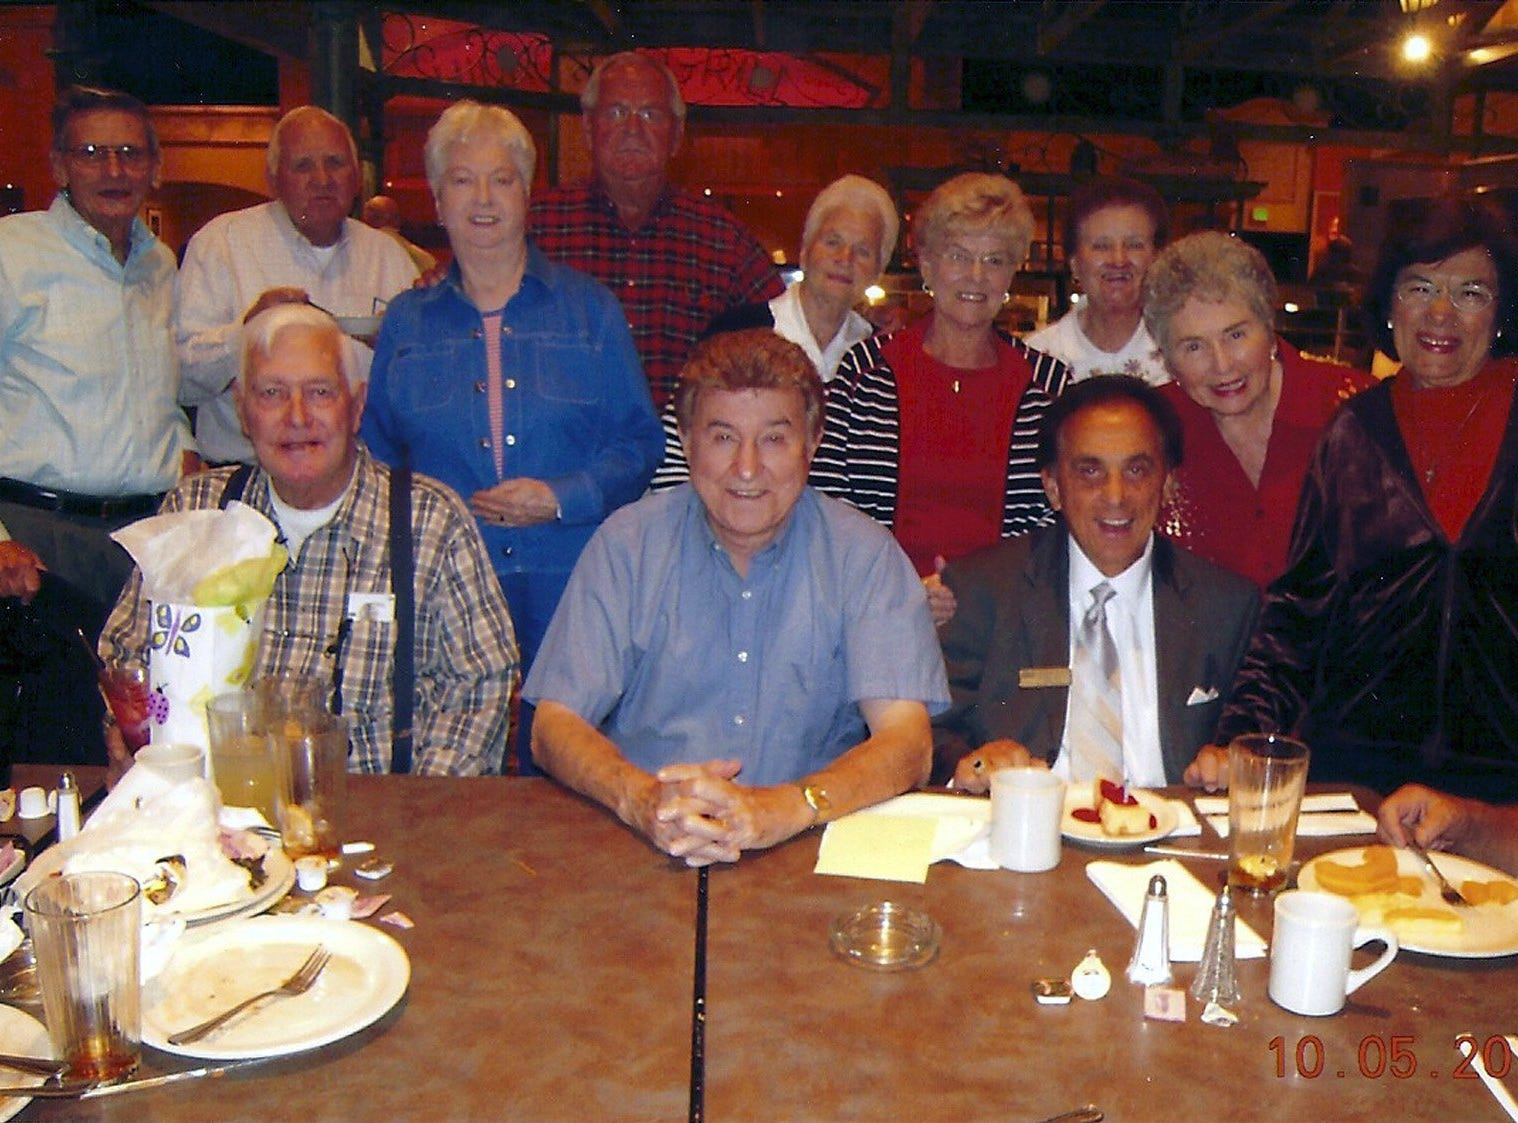 A group of Humes High School friends met at the Horseshoe Casino to celebrate George Klein's birthday on October 8.  G.K. as he is known, is a Memphis legend in his own right and a dear friend of Elvis. Frank Austein (front row, from left) and Dr. Hubert Dellinger with George Klein; Homer Hudspeth (standing, from left), Bobby Blancett, Martha Blancett, Sonny Spore, Georgia Austein, Peggy Spore, Catherine Hudspeth, Blanche Jordan Scott and Georia Scarmouteos.